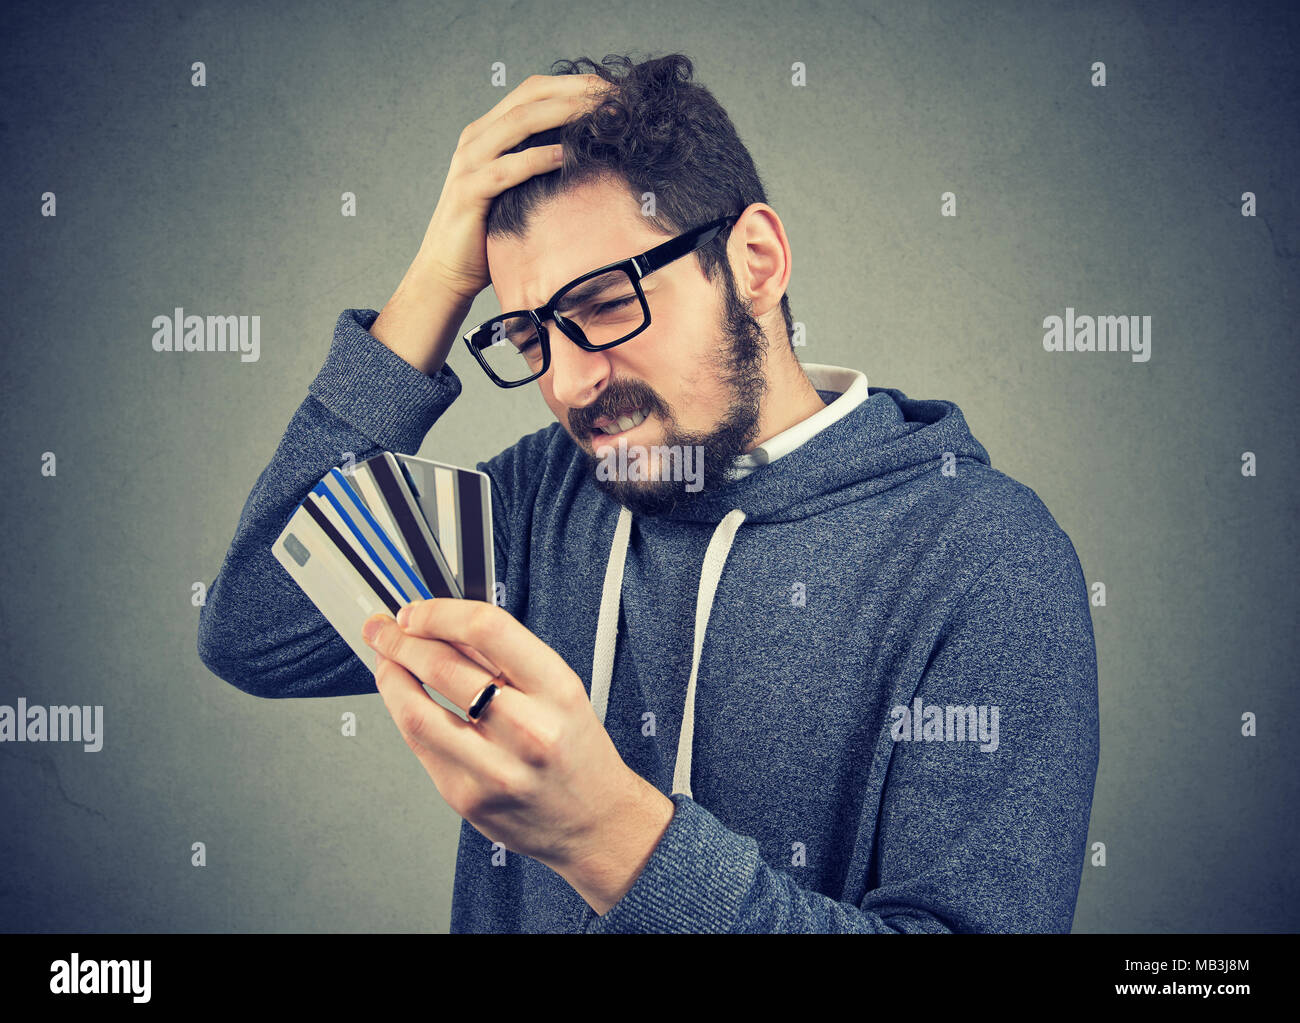 Confused stressed man looking at too many credit cards full of debt - Stock Image